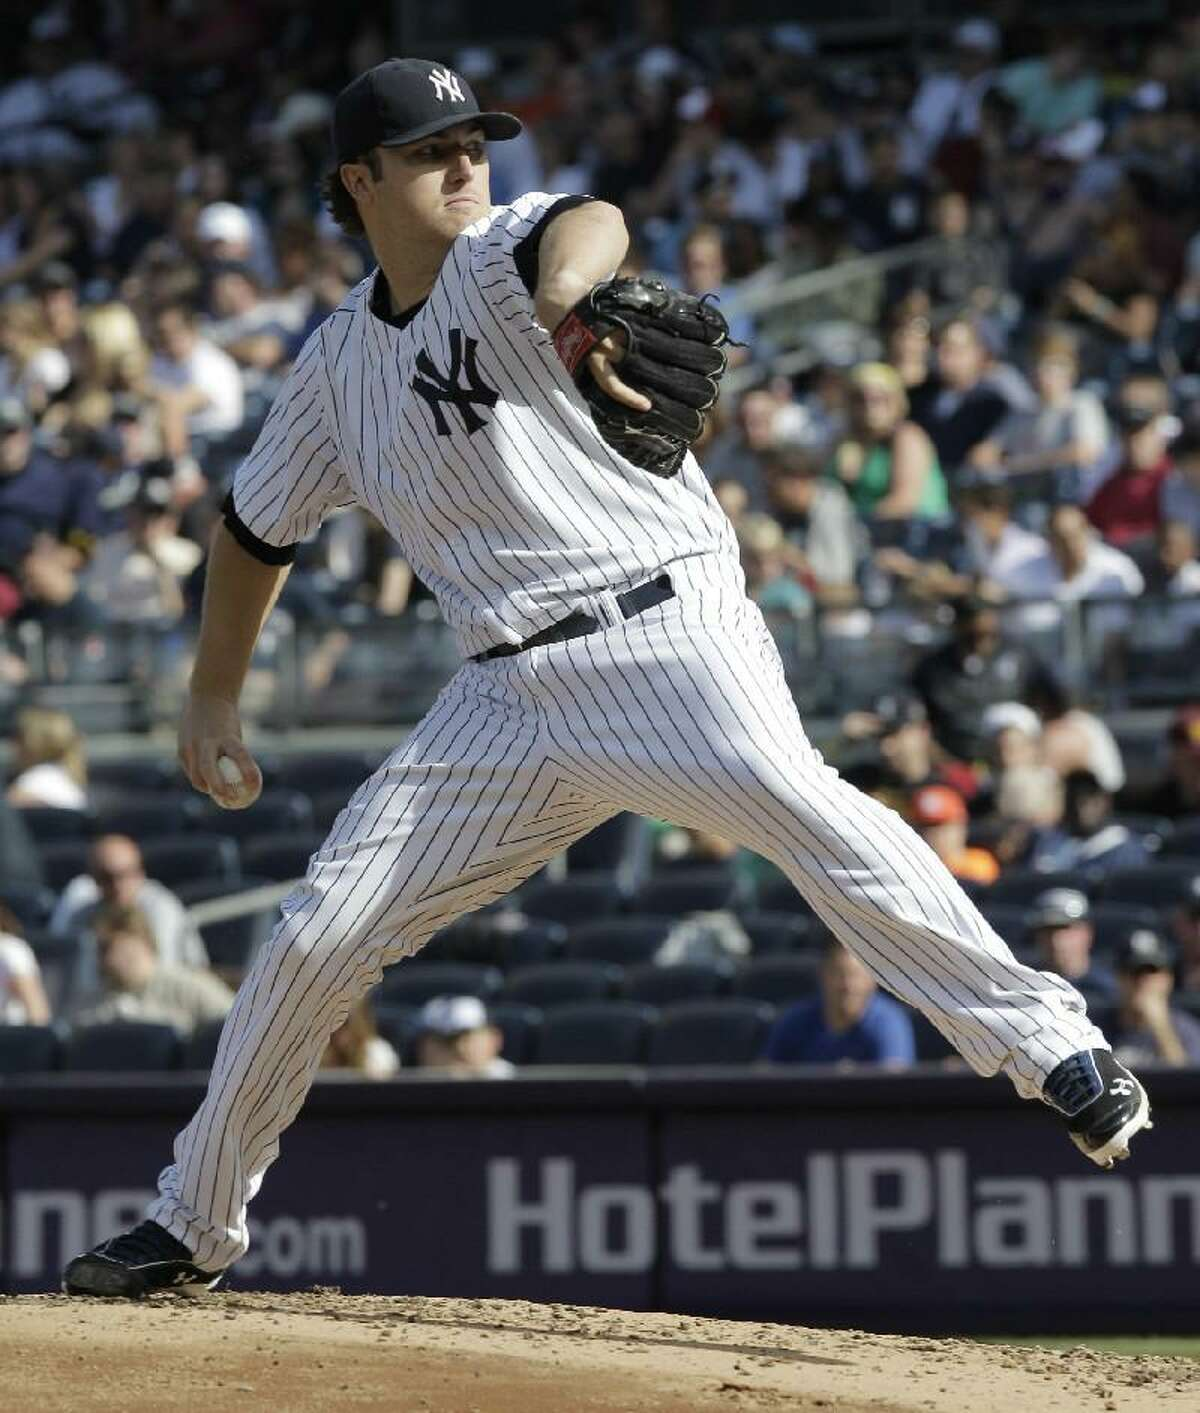 ASSOCIATED PRESS New York Yankees pitcher Phil Hughes throws in the third inning of Saturday's game against the Seattle Mariners at Yankee Stadium in New York. The Yankees won 6-2.